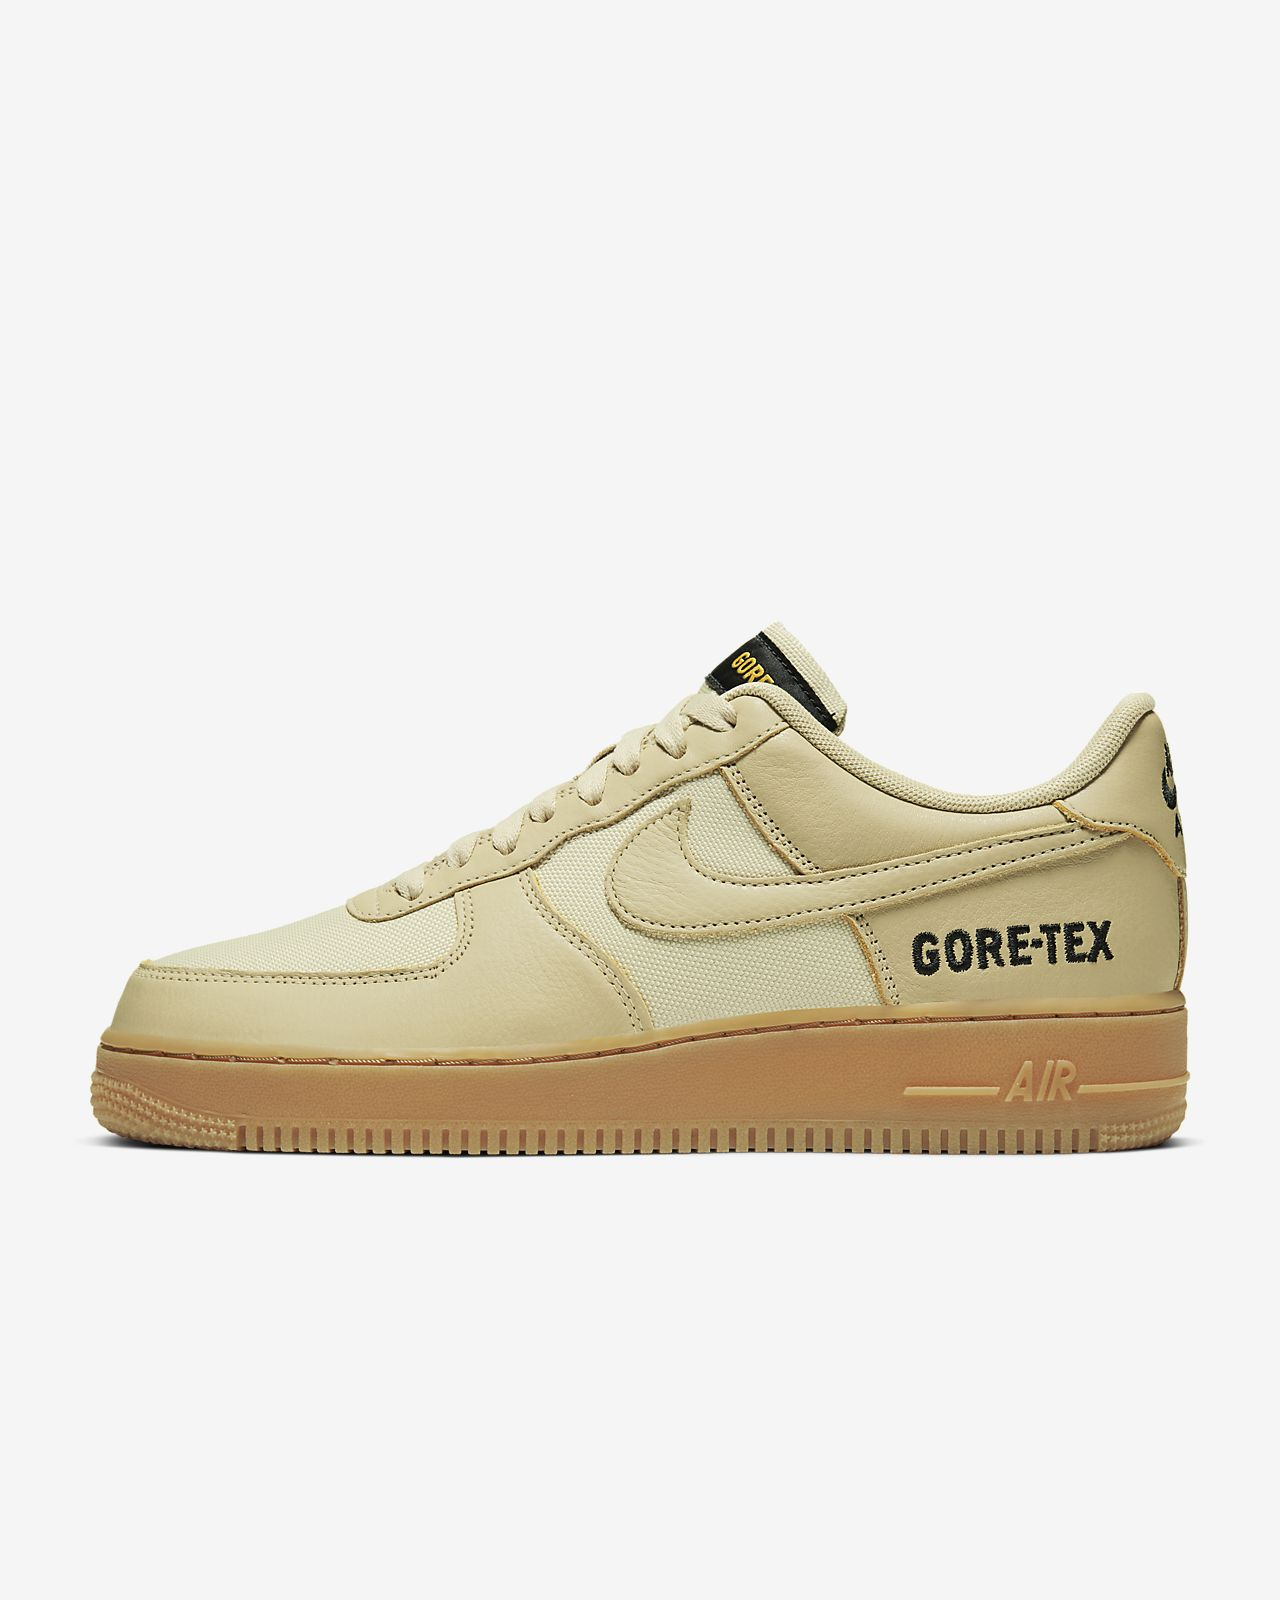 Bota Nike Air Force 1 GORE-TEX